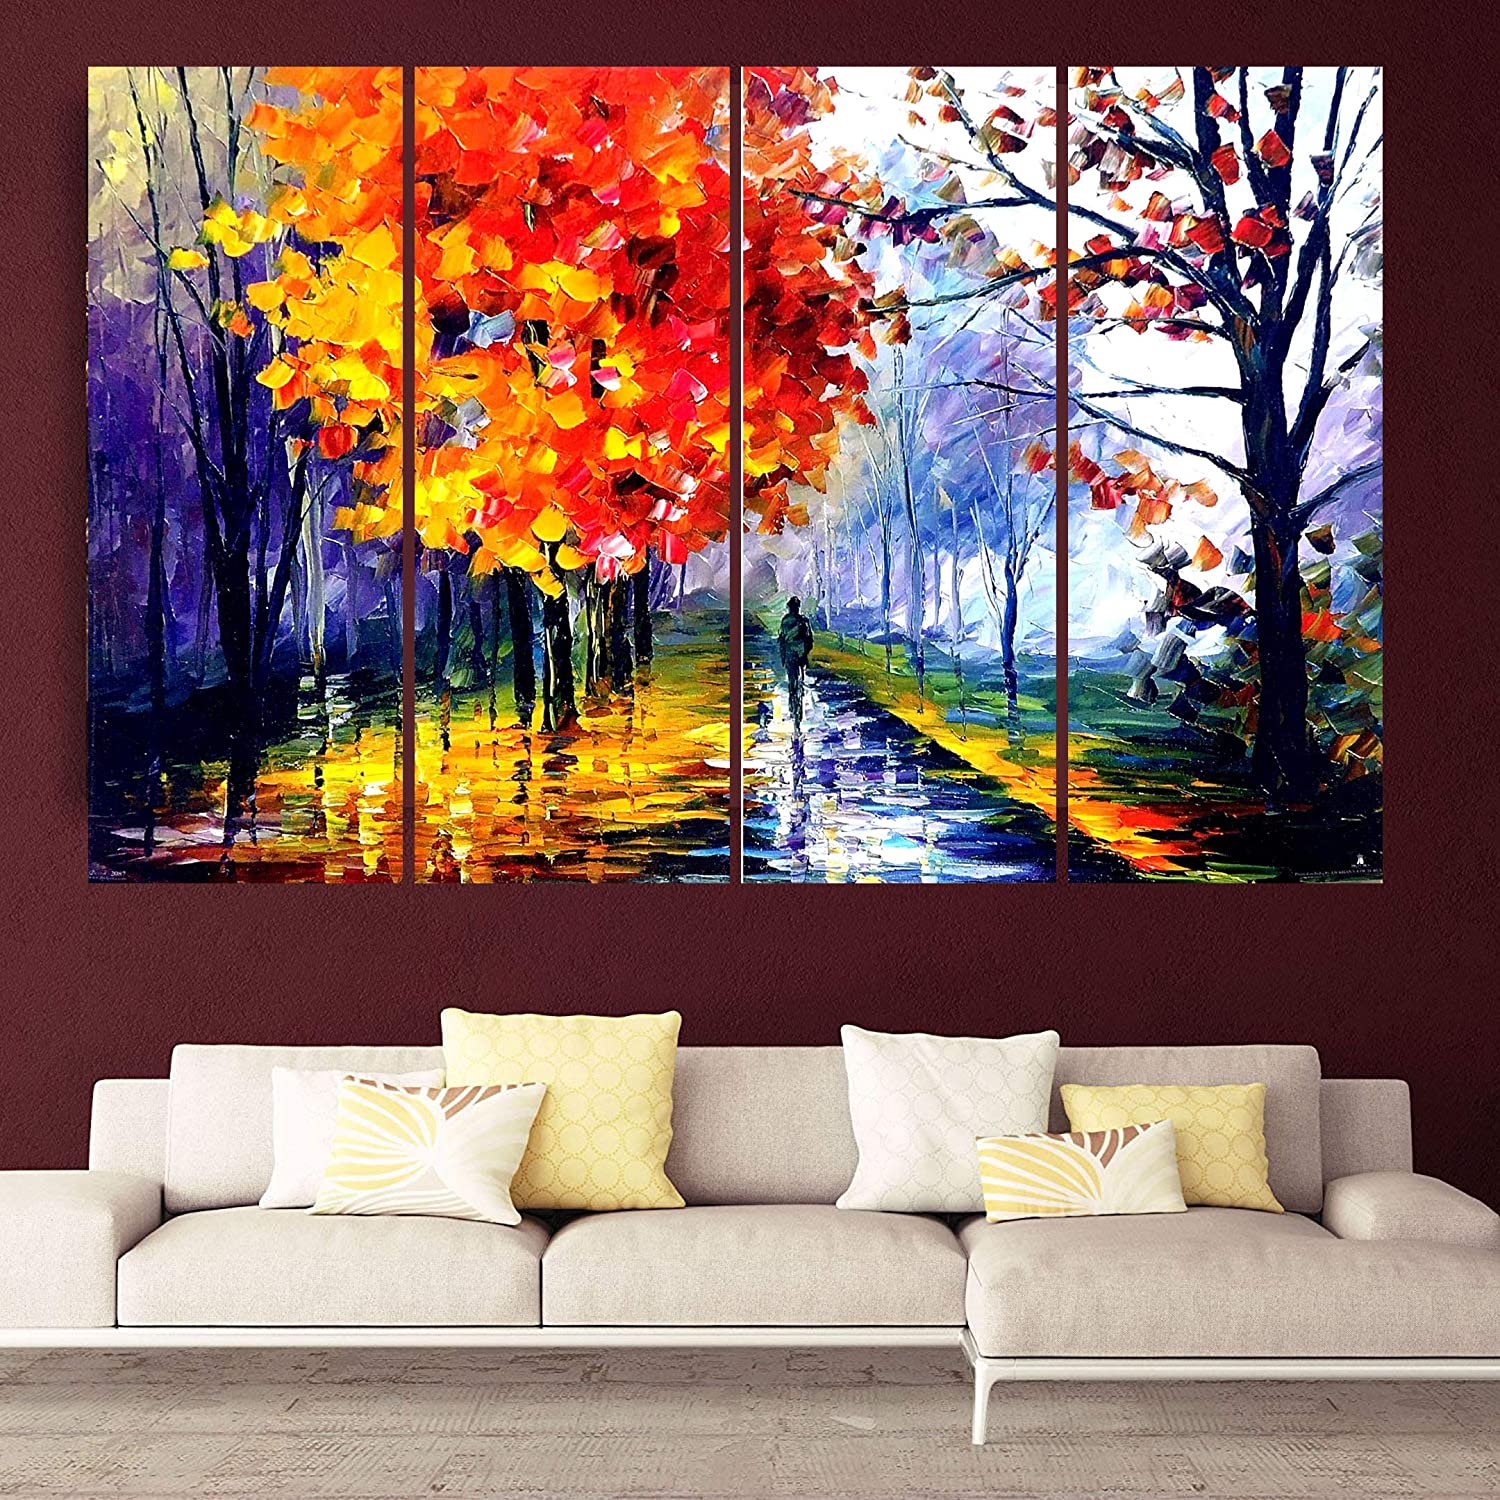 Kyara Arts Multiple Frames Beautiful Modern Art Wall Painting For Living Room Bedroom Office And Hotels Wooden Framed Digital Painting 36inchx24inch Amazon In Home Kitchen